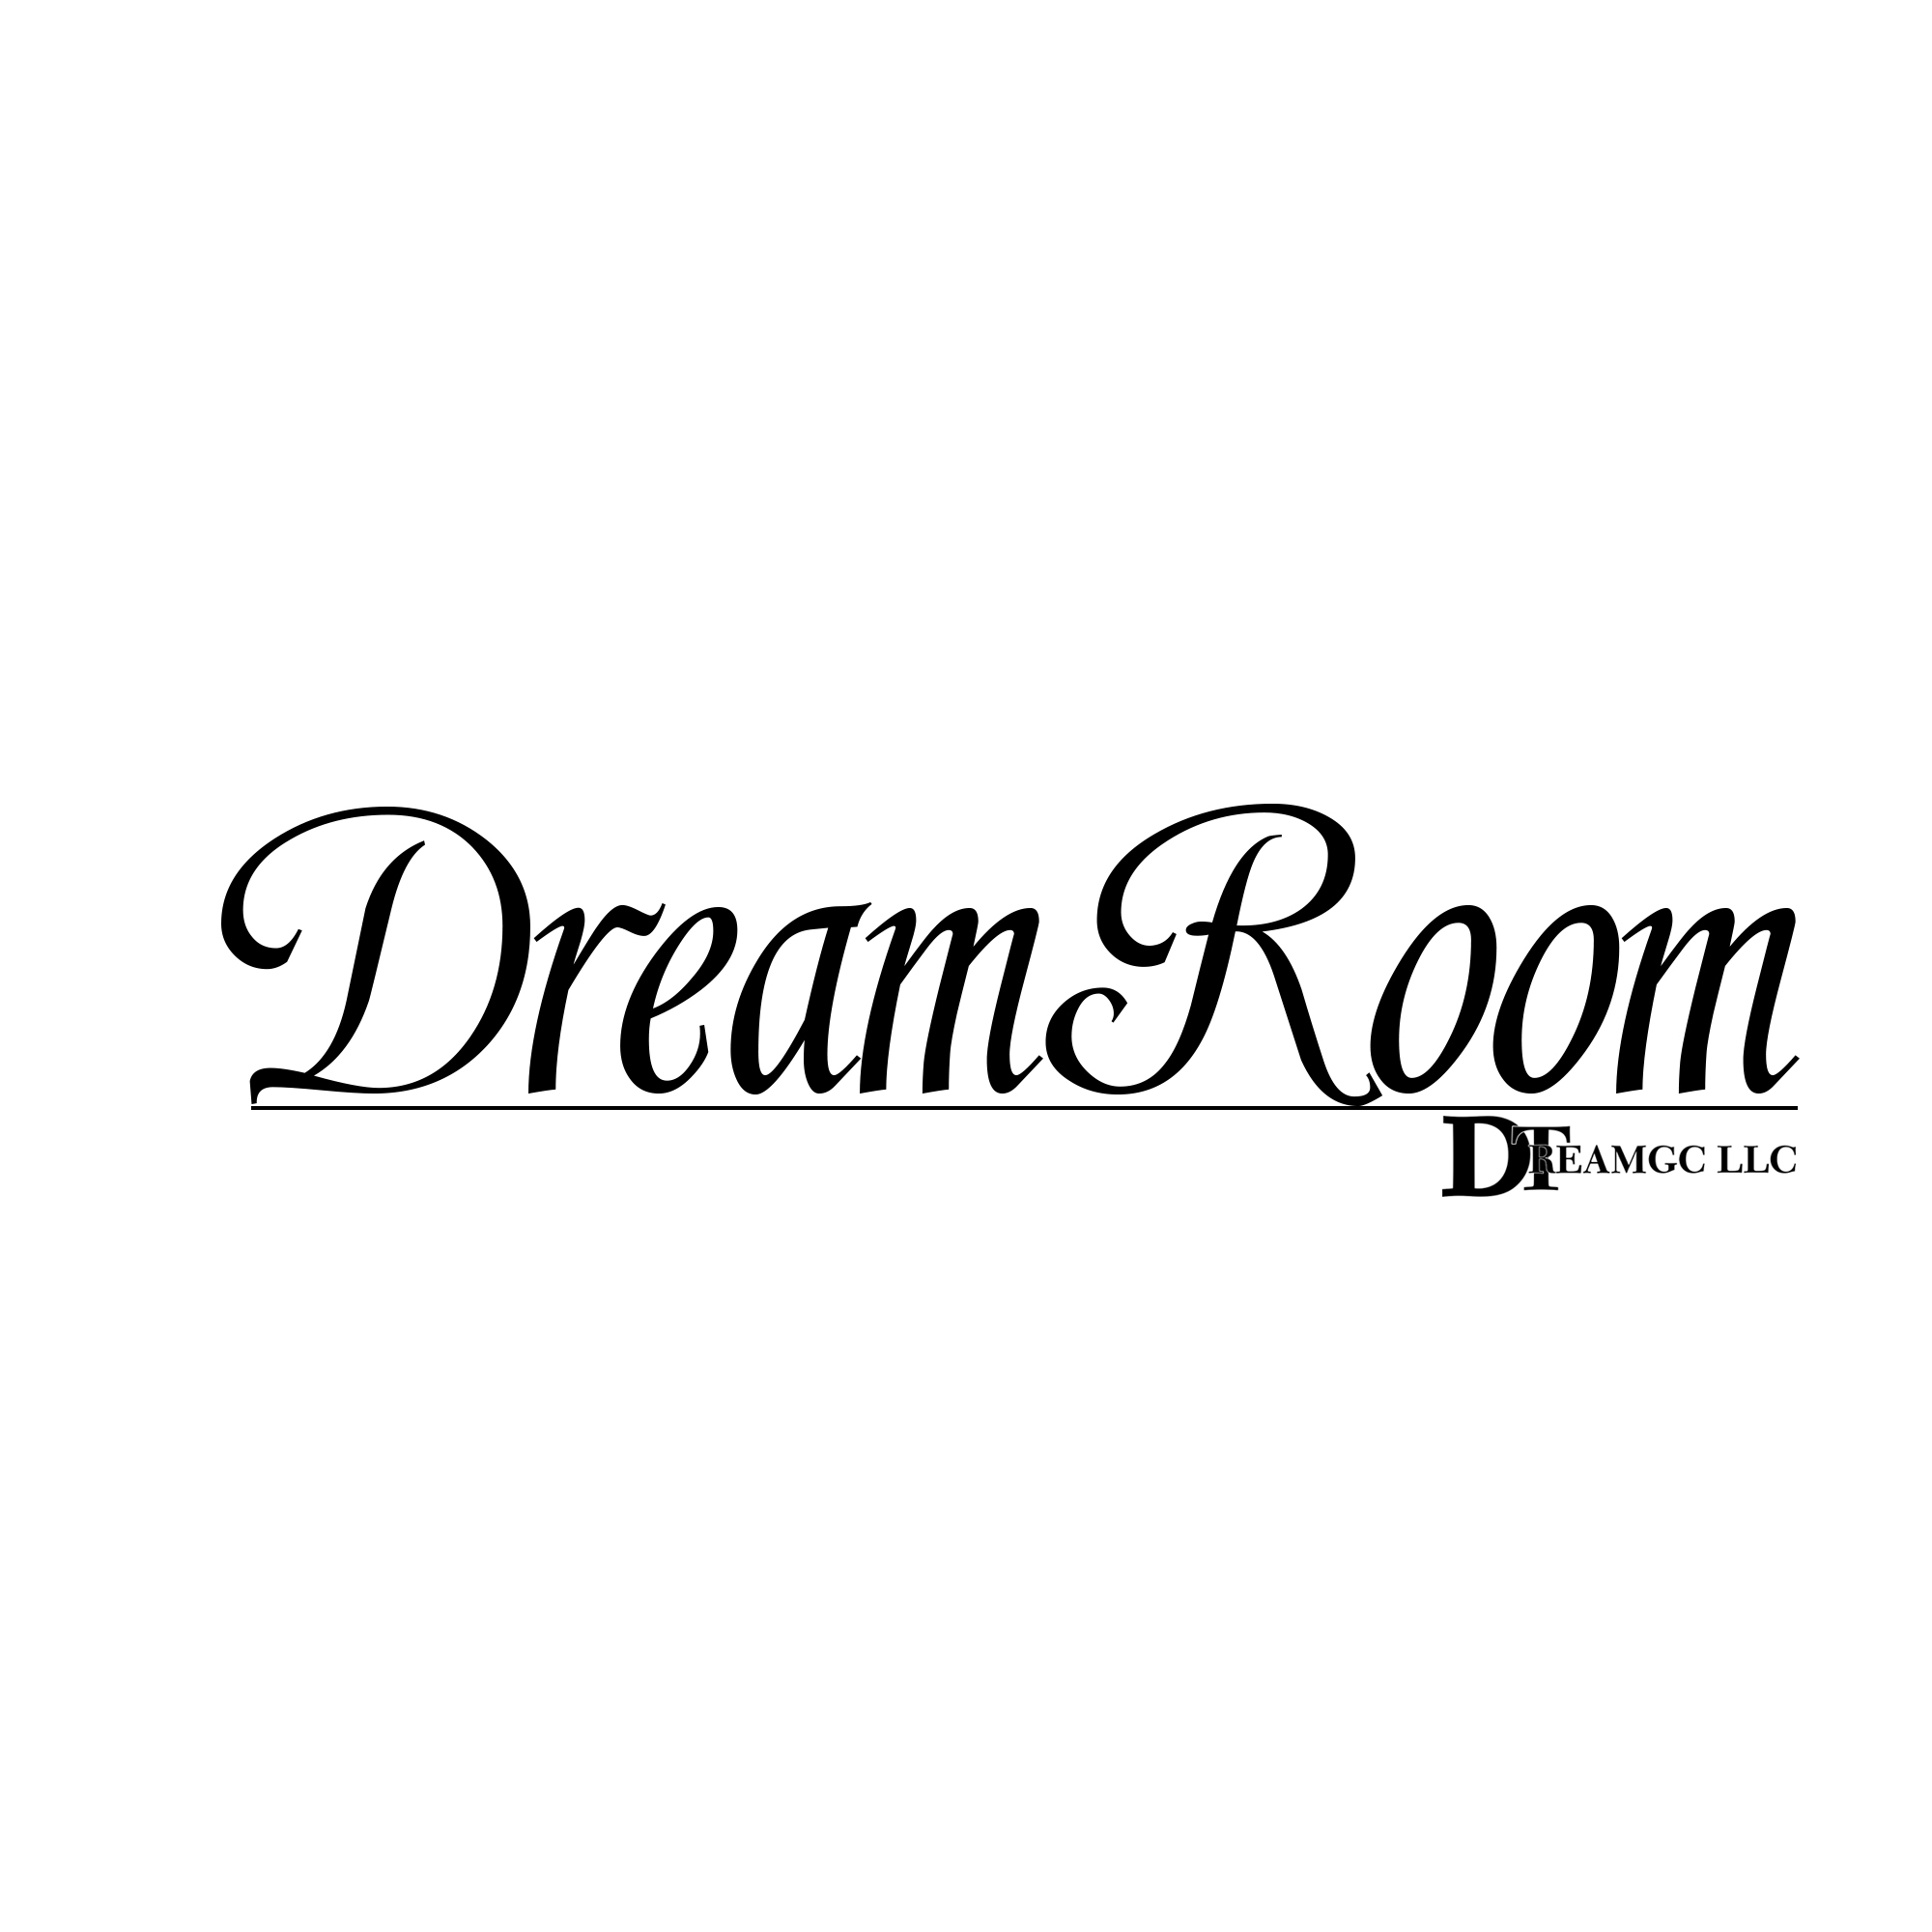 THE DREAM ROOM